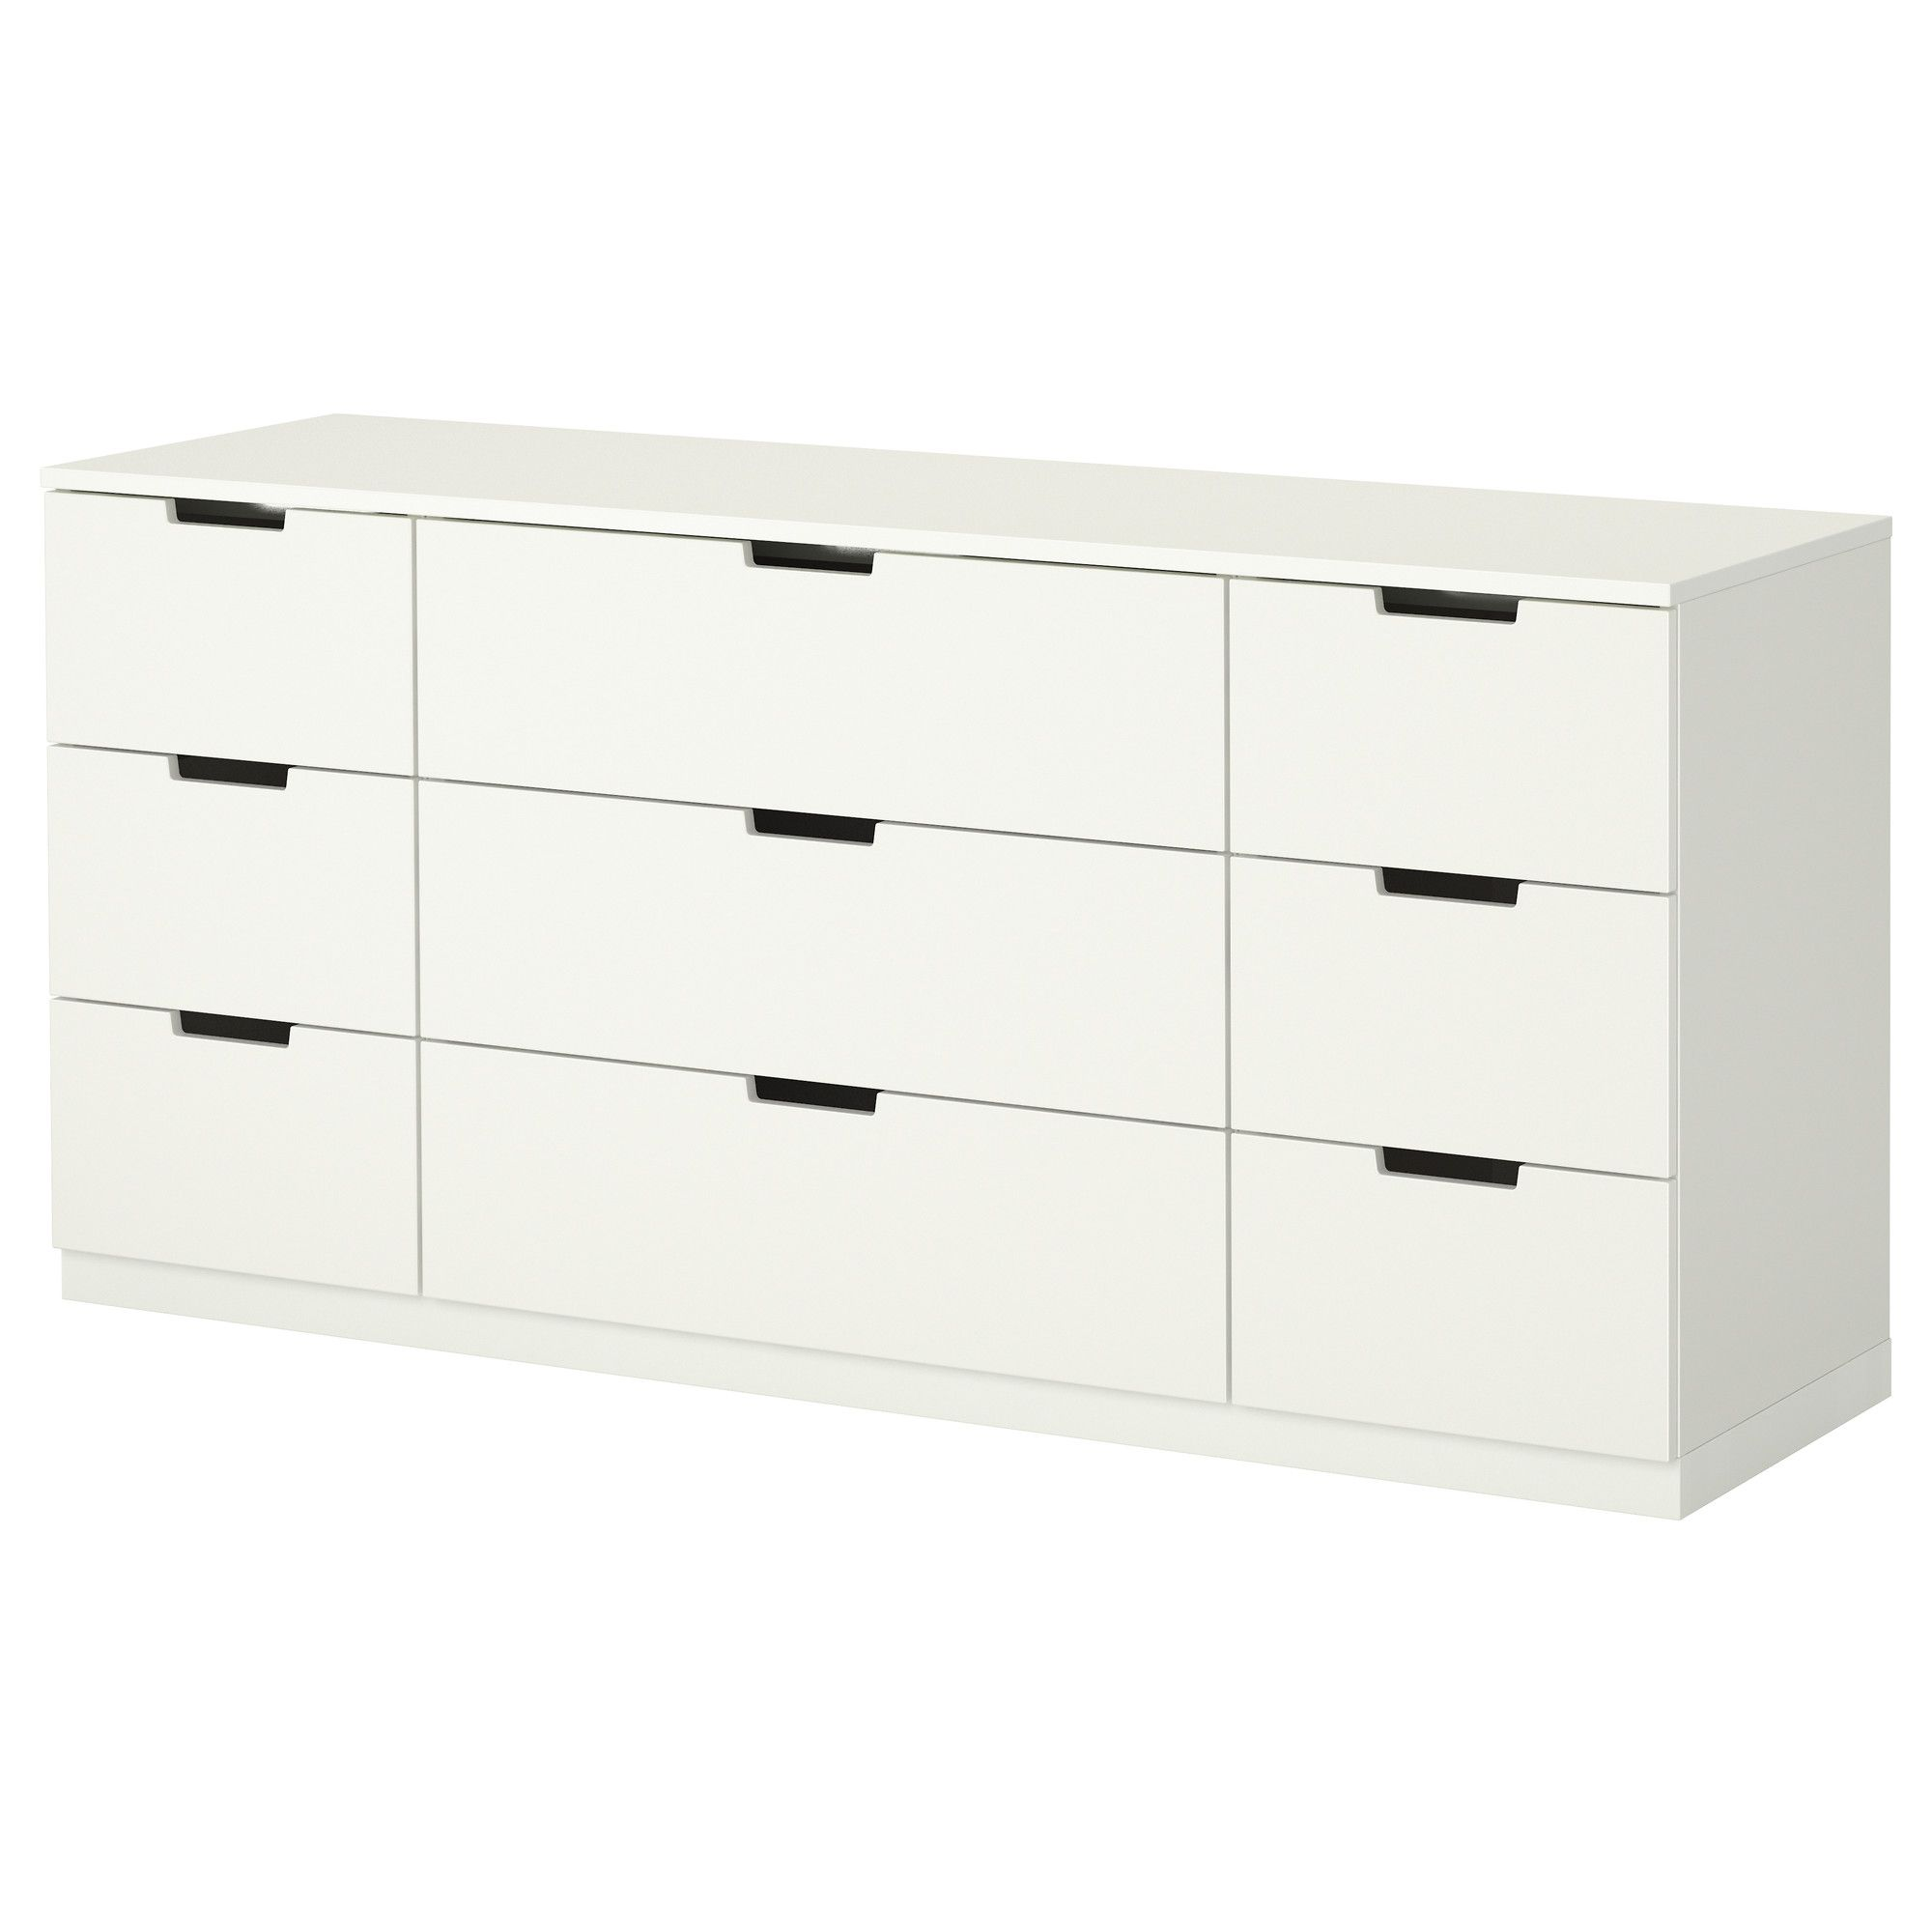 Bedroom storage. NORDLI 9 drawer chest  white   Drawers  Dresser storage and Dresser